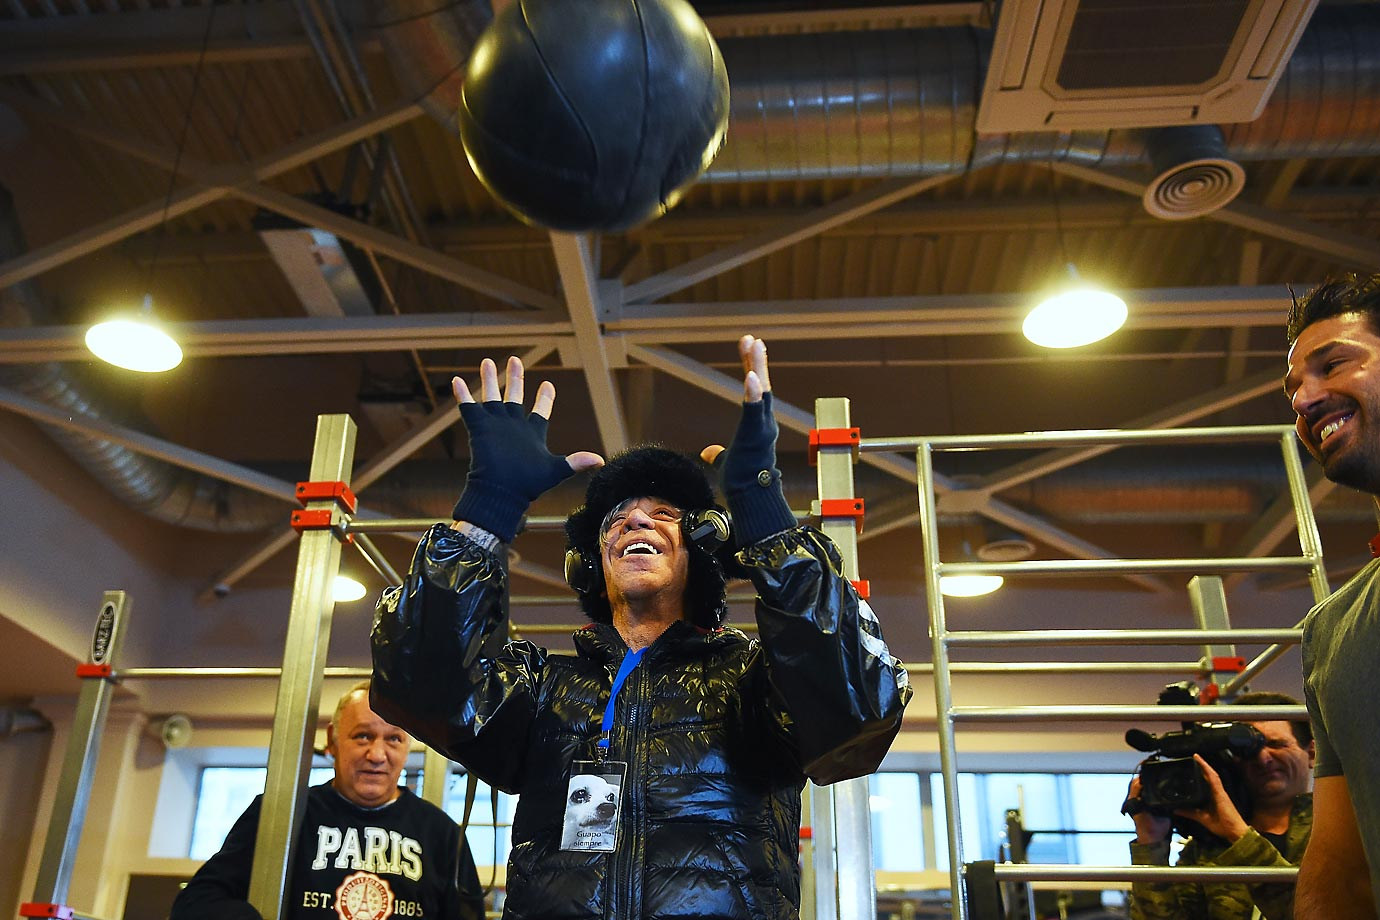 Actor Mickey Rourke trains in a World Class fitness club in Moscow.